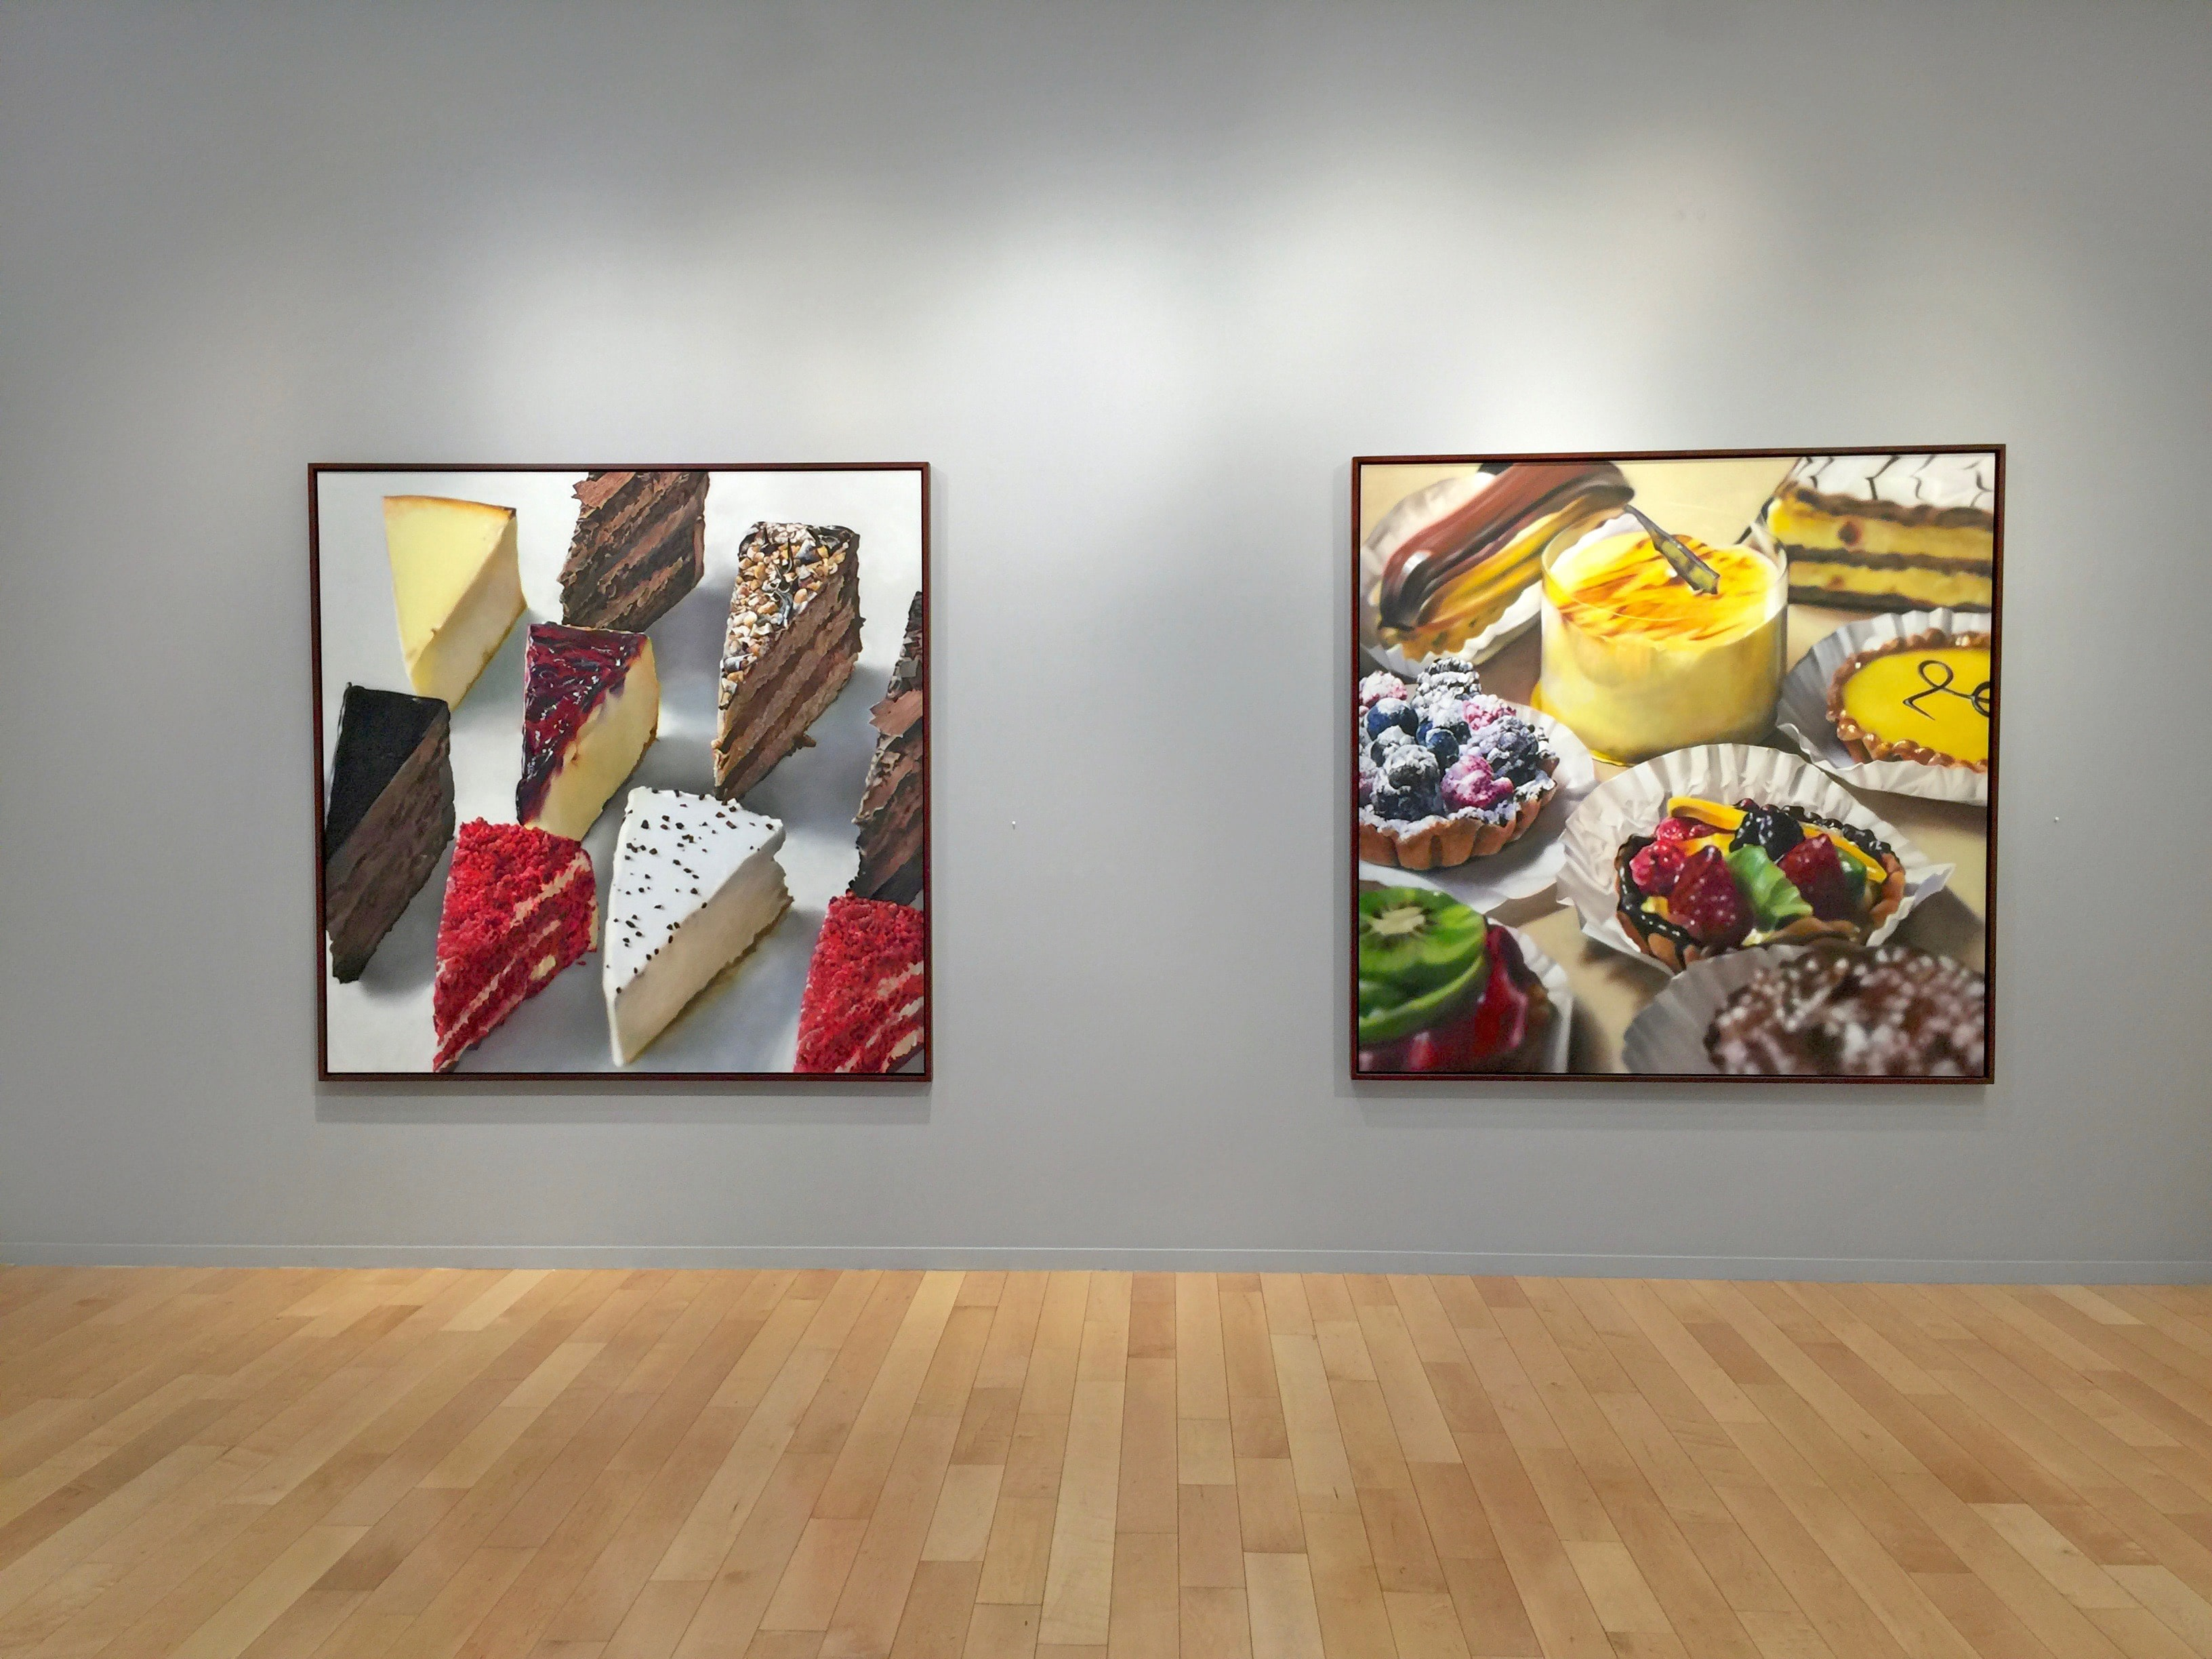 Ben Schonzeit Photorealist Paintings of Cake and Pastries